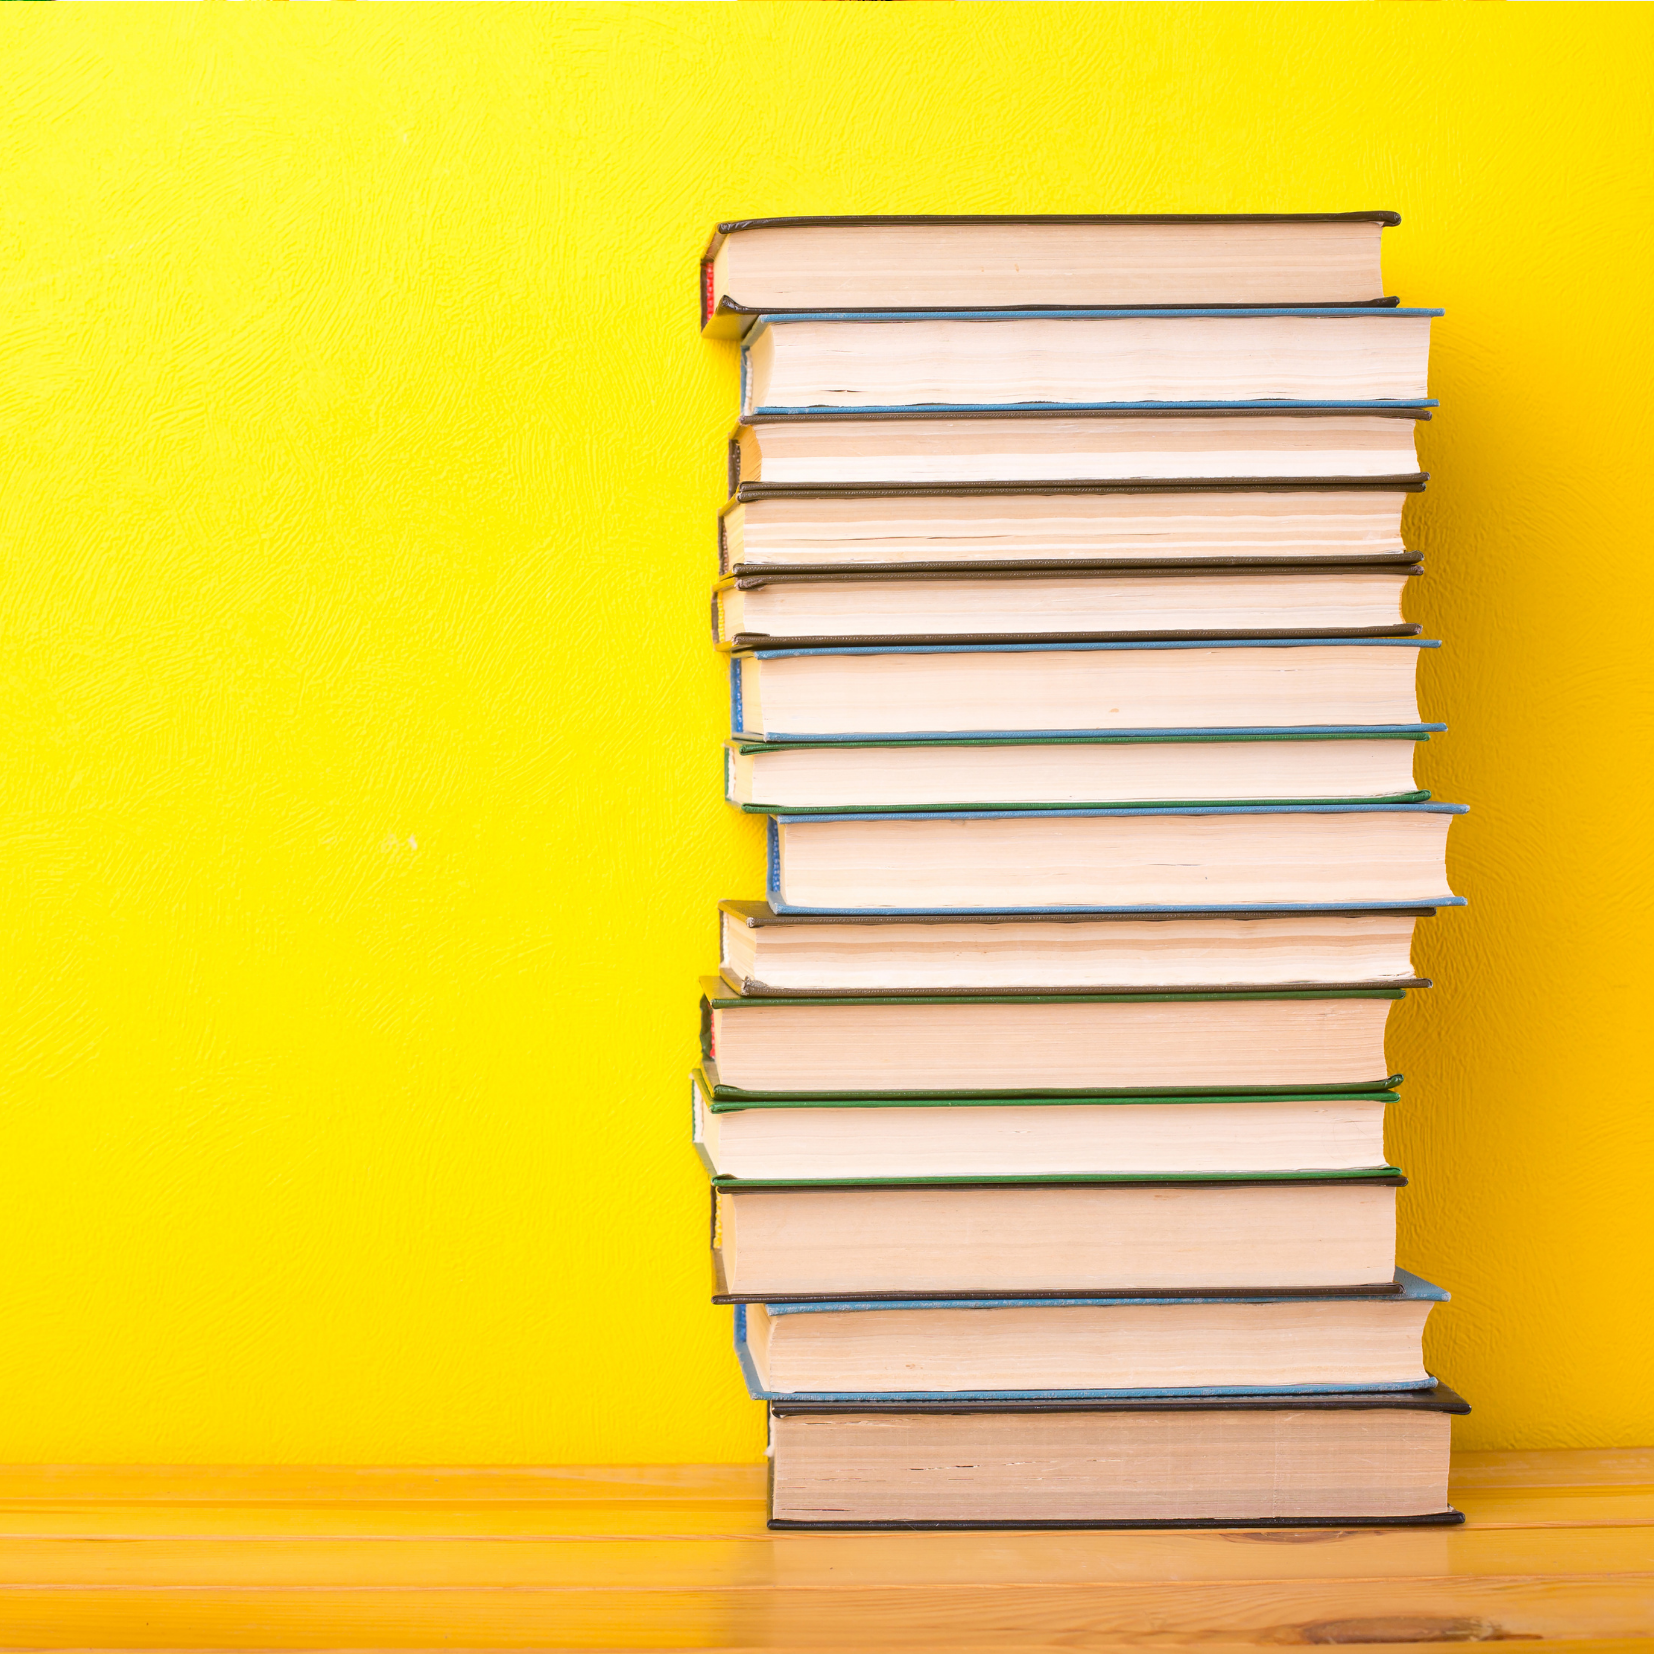 Stack of books on yellow background depicting Consulting